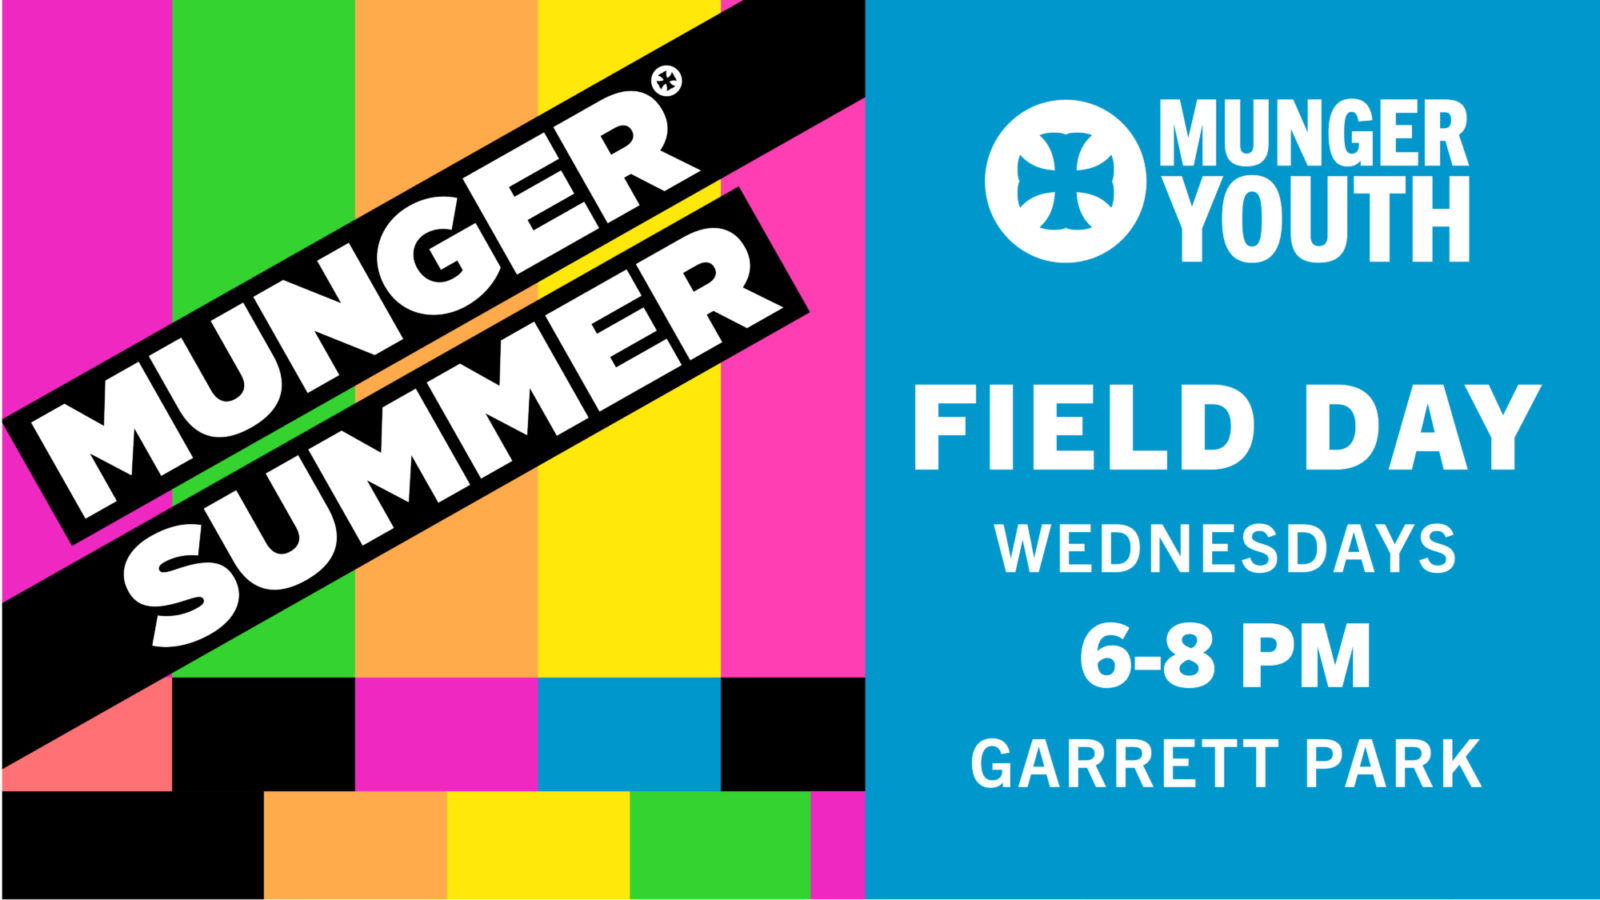 Munger Youth Field Day